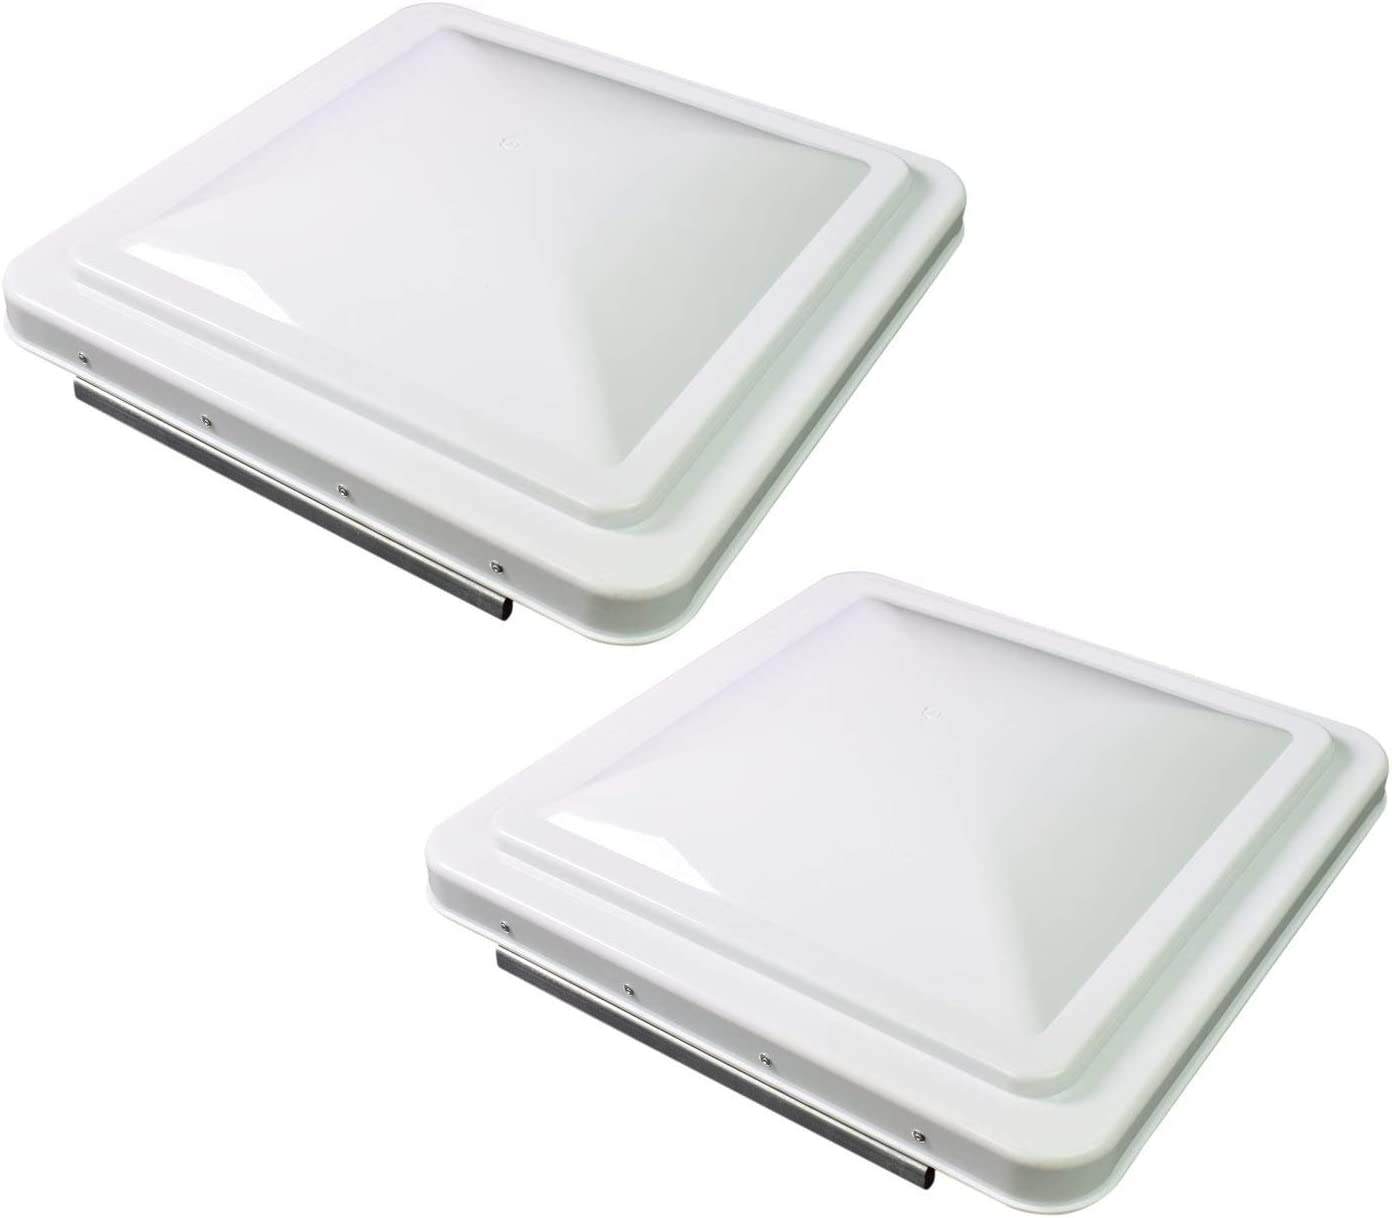 Vent Cover RV Roof Vent Cover Universal Car Air Ventilation Hood for Caravan Motorhome Vent Cover